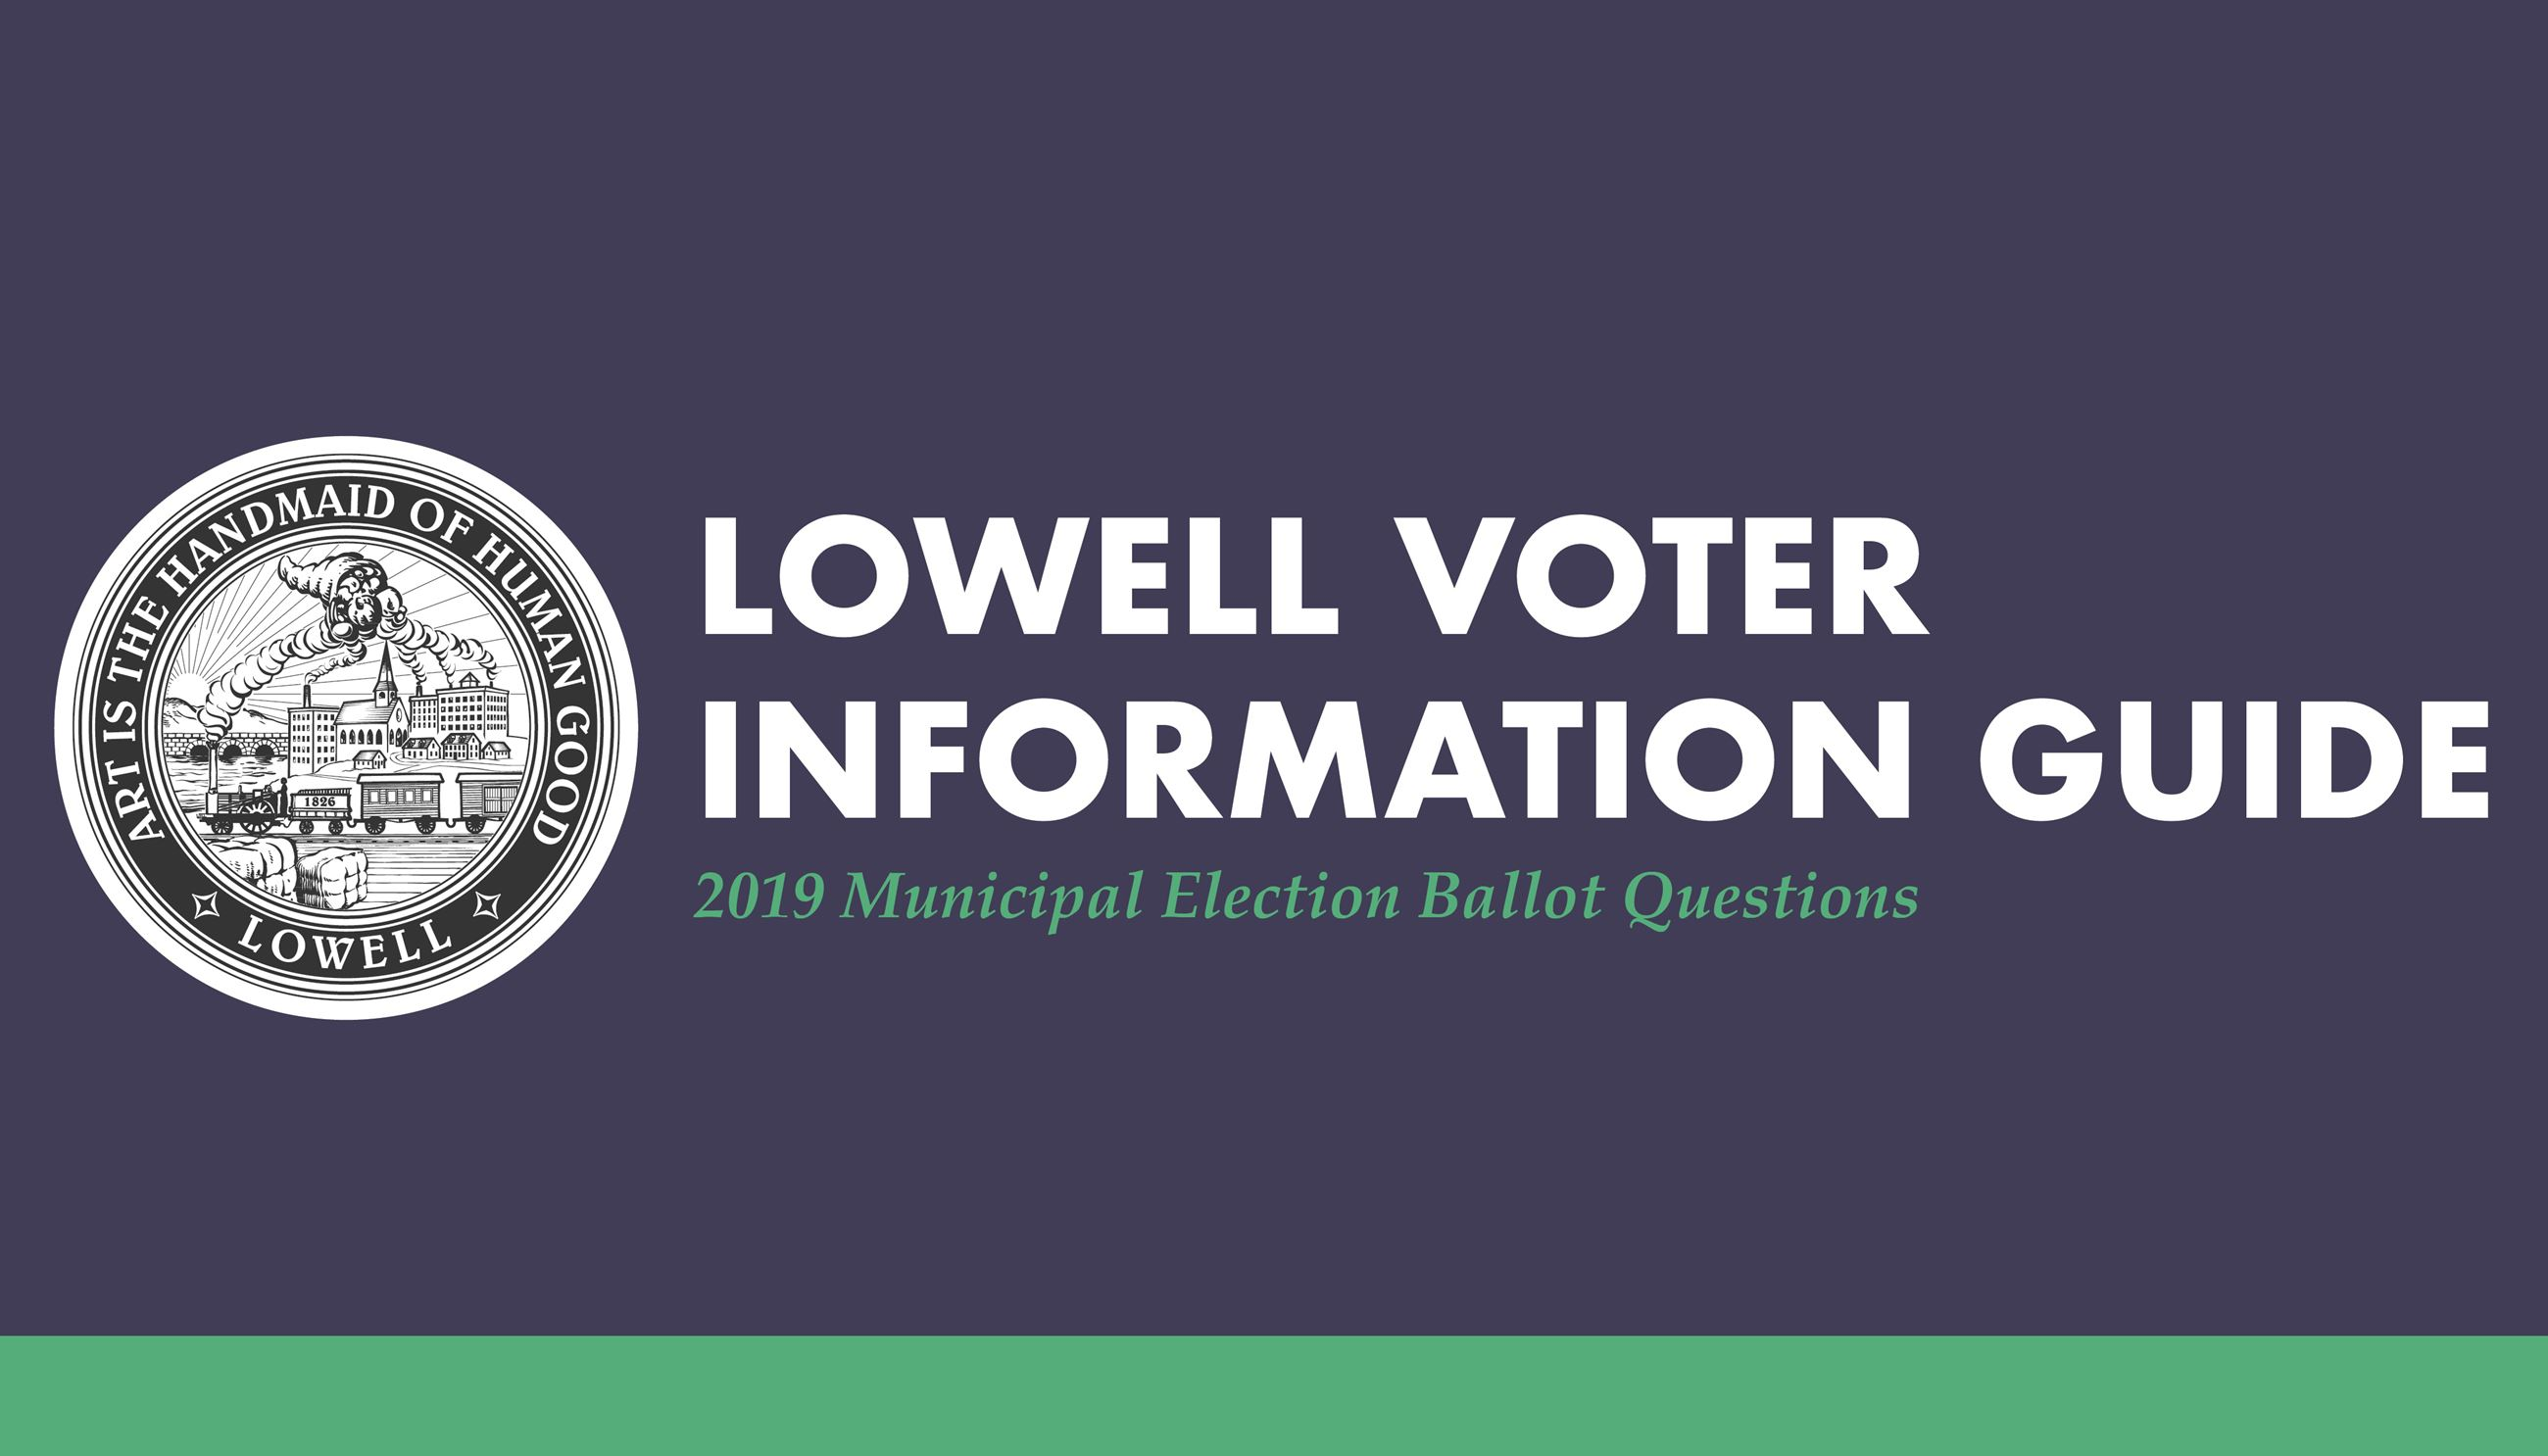 Lowell Voter Information Guide Graphic